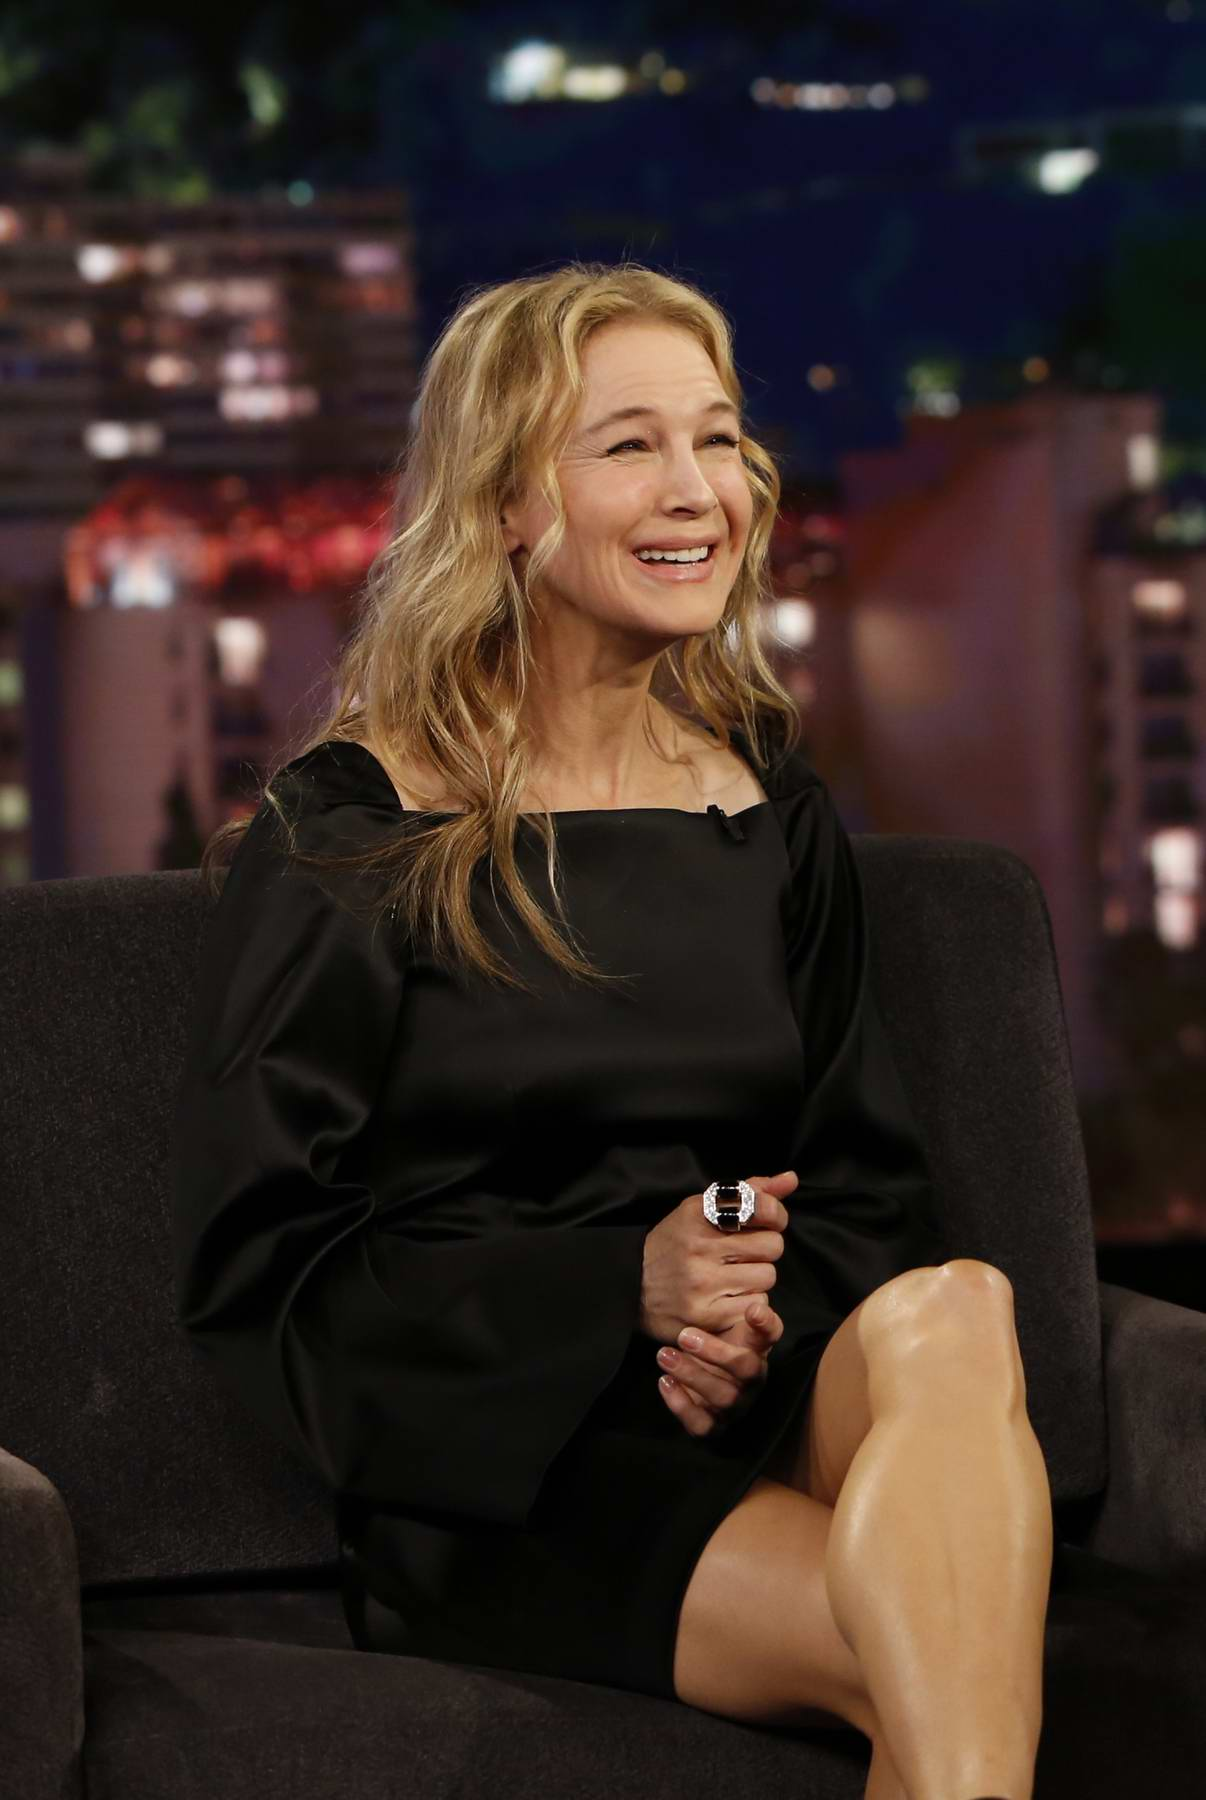 Renee Zellweger visits Jimmy Kimmel Live! in Los Angeles